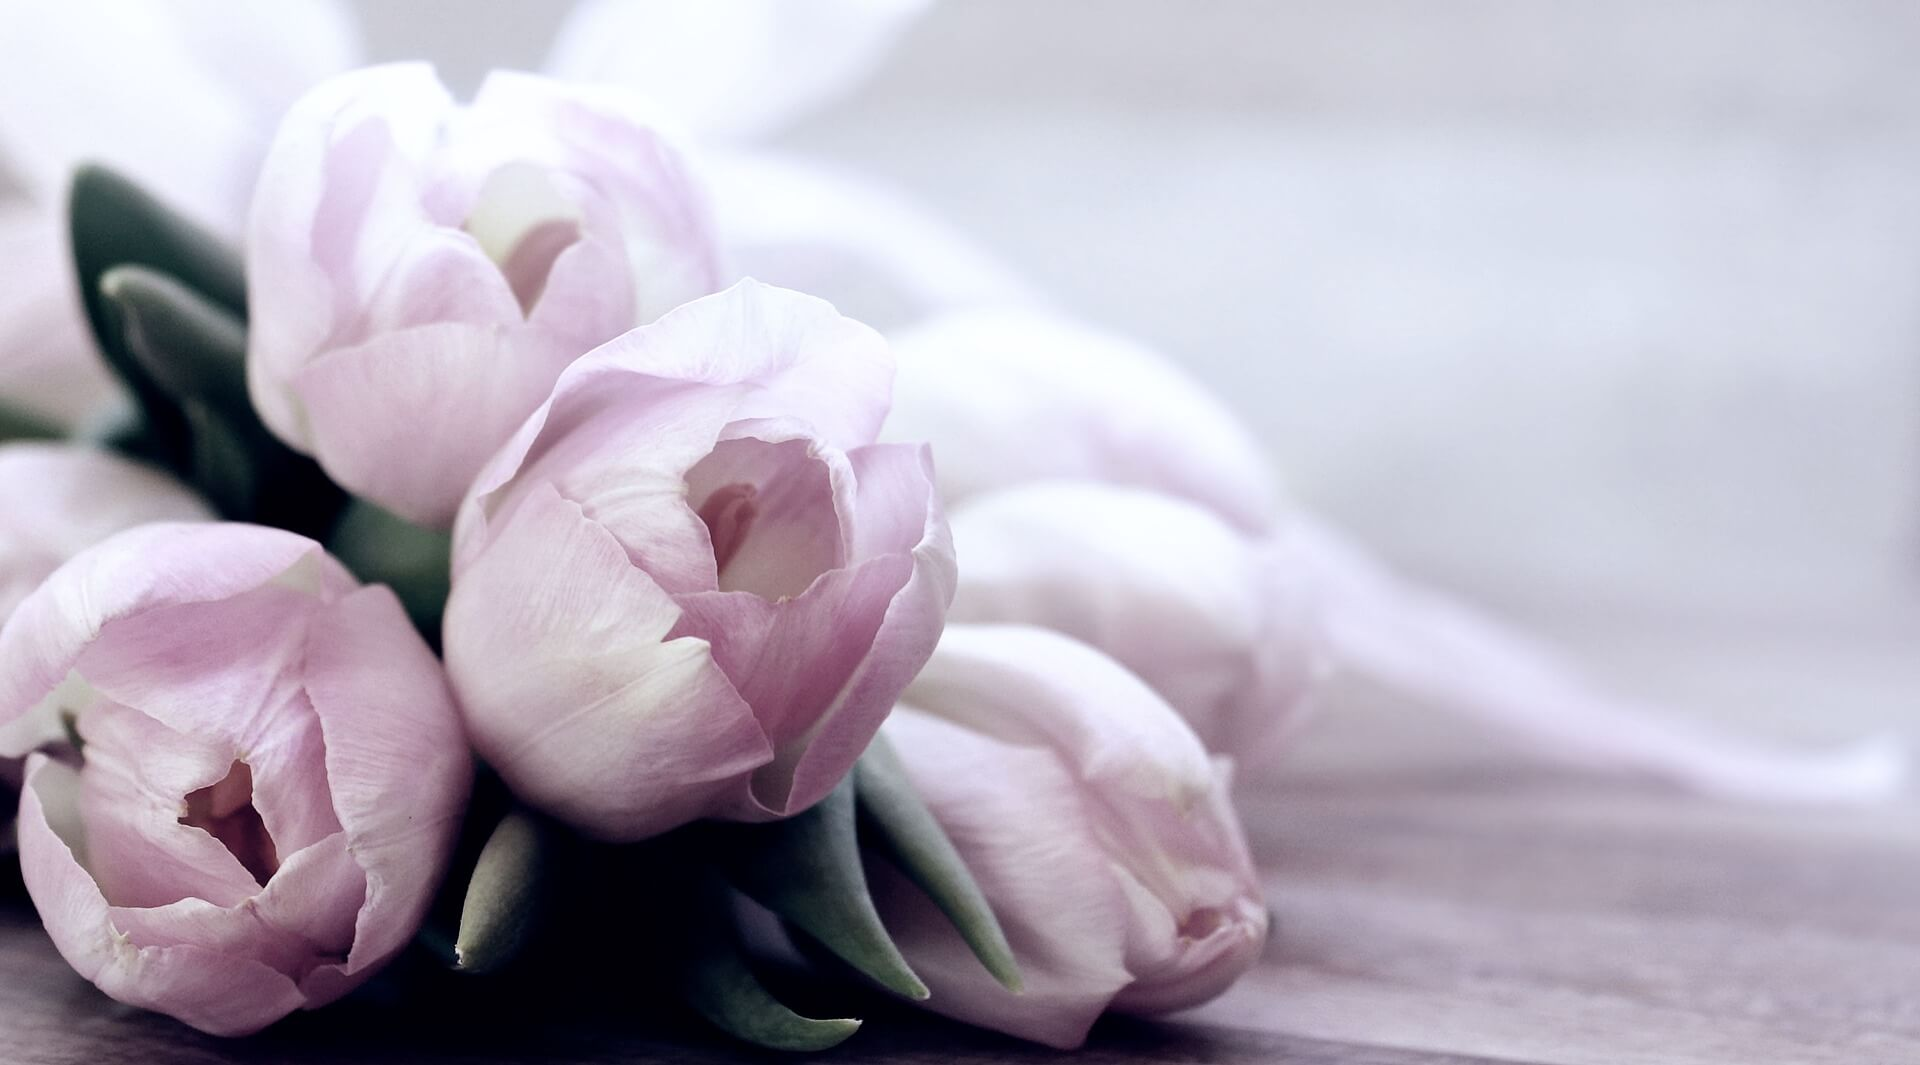 Calming, stress reducing tulips recommended by nutrition and lifestyle coach